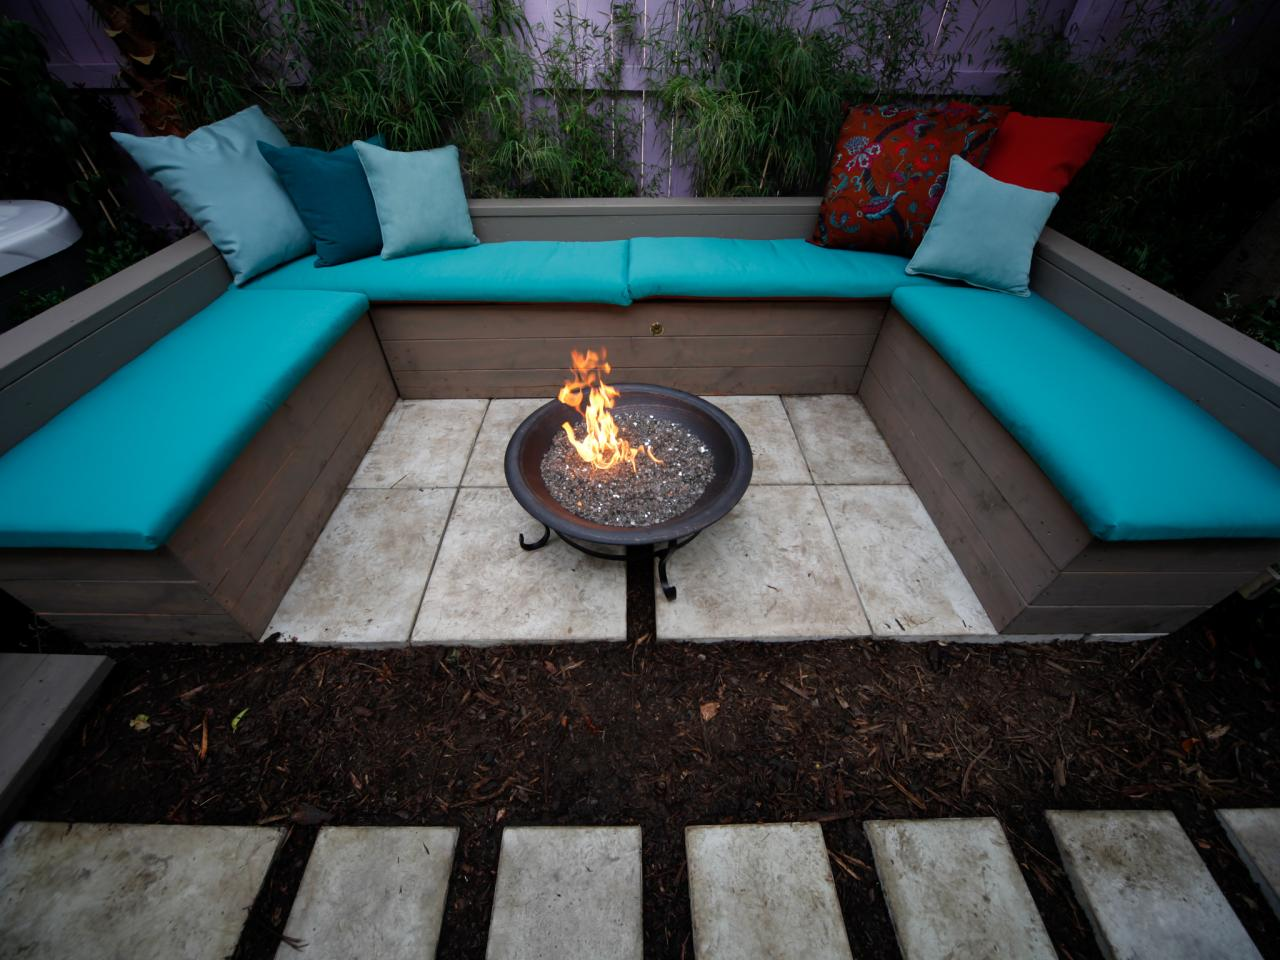 In Ground Fire Pit Design Juggles Cold Outdoor Into A Warm